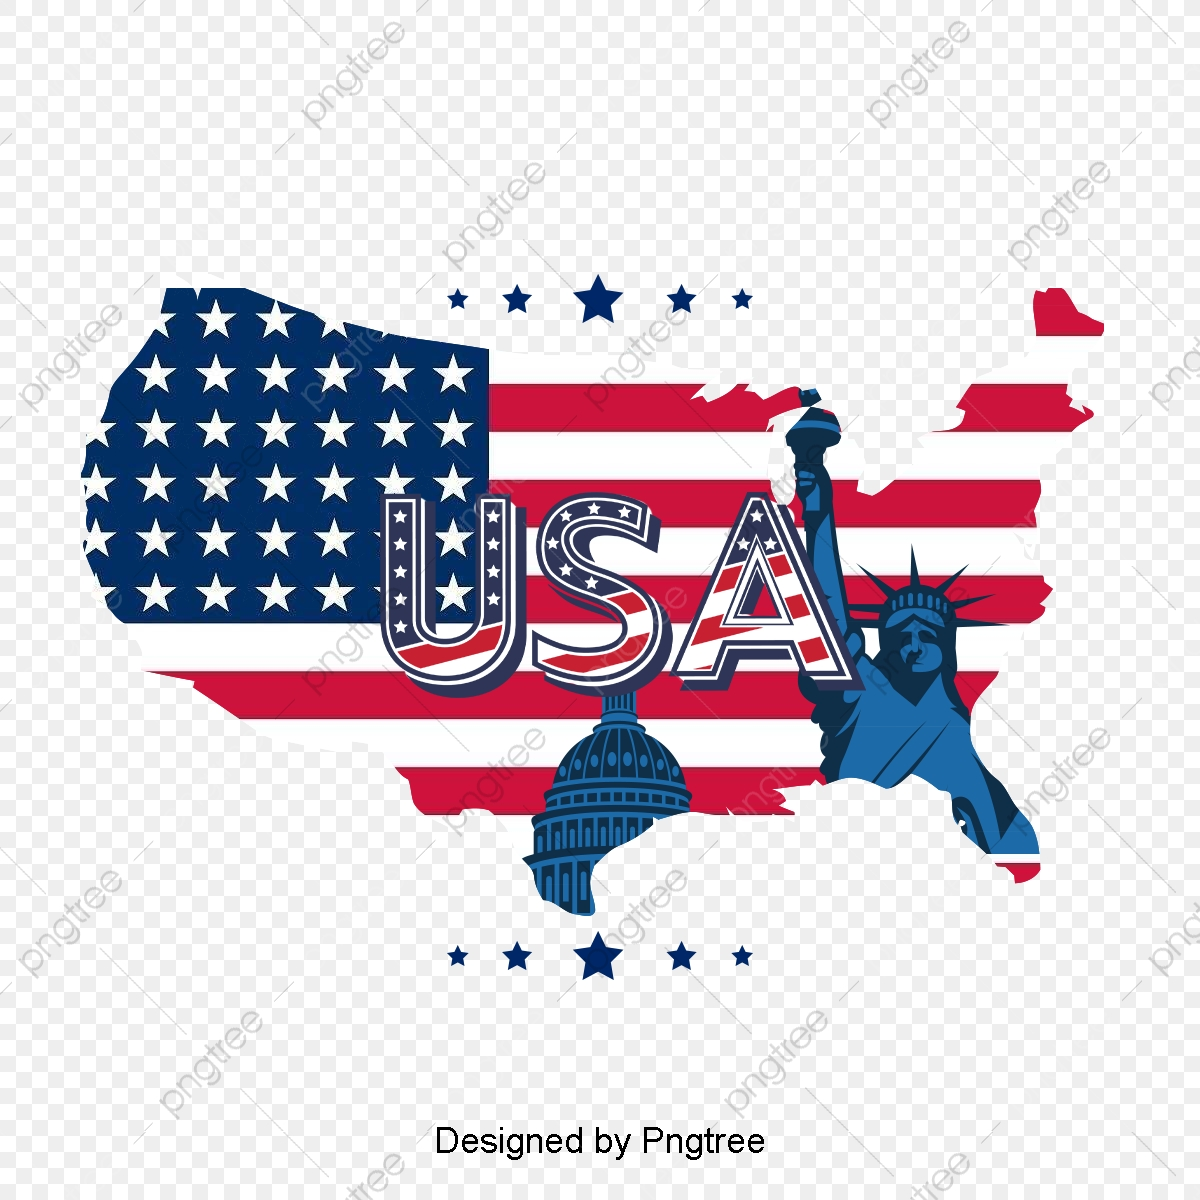 American Flag Map Flag Clipart Map Clipart United States Png - American-flag-us-map